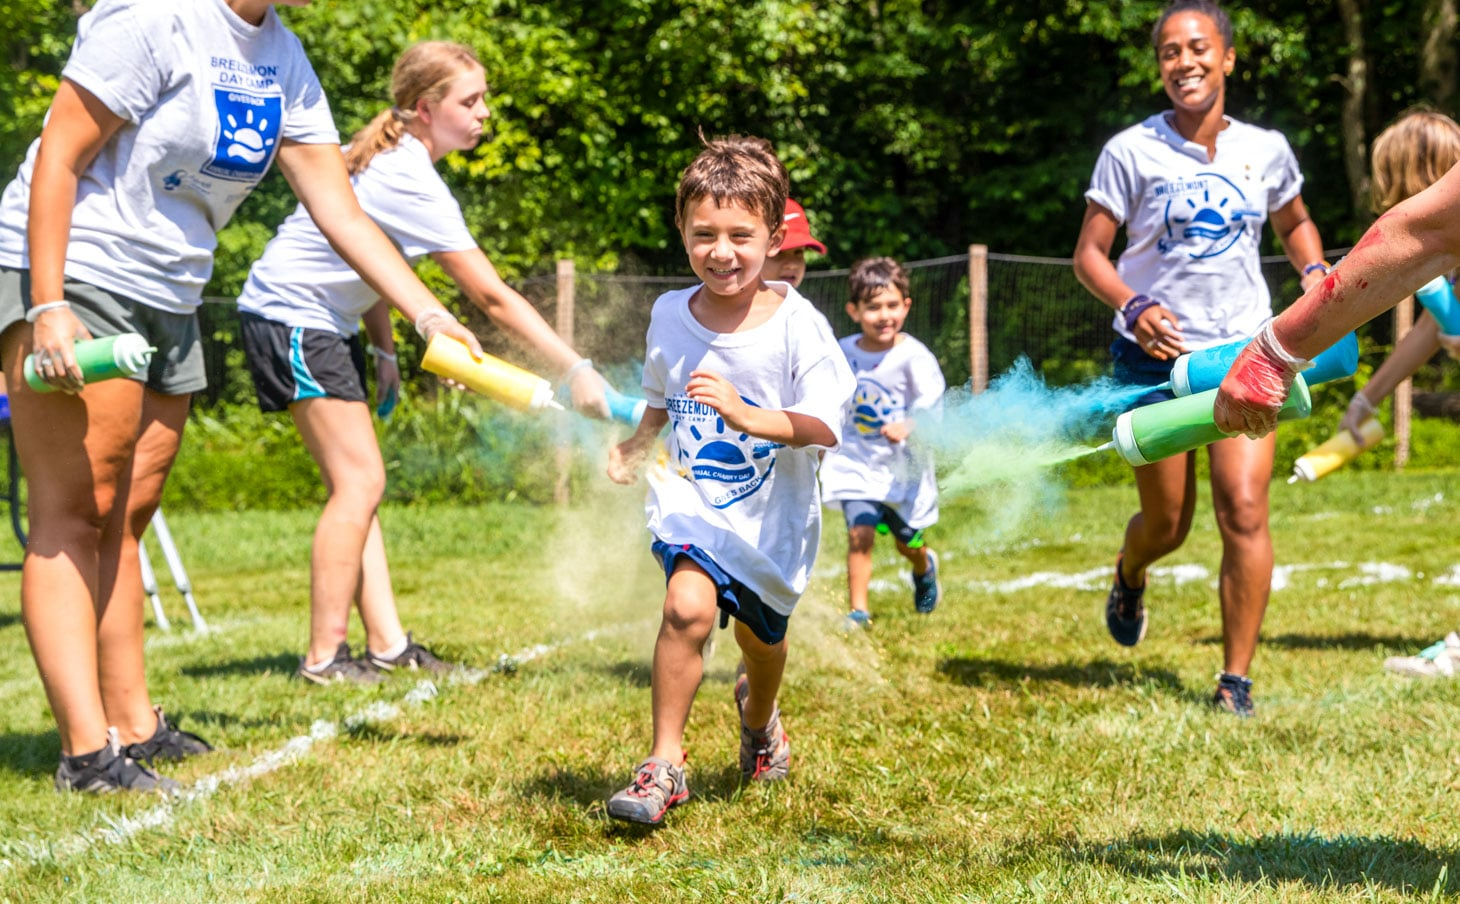 A camper running through colorful dust while smiling and laughing.